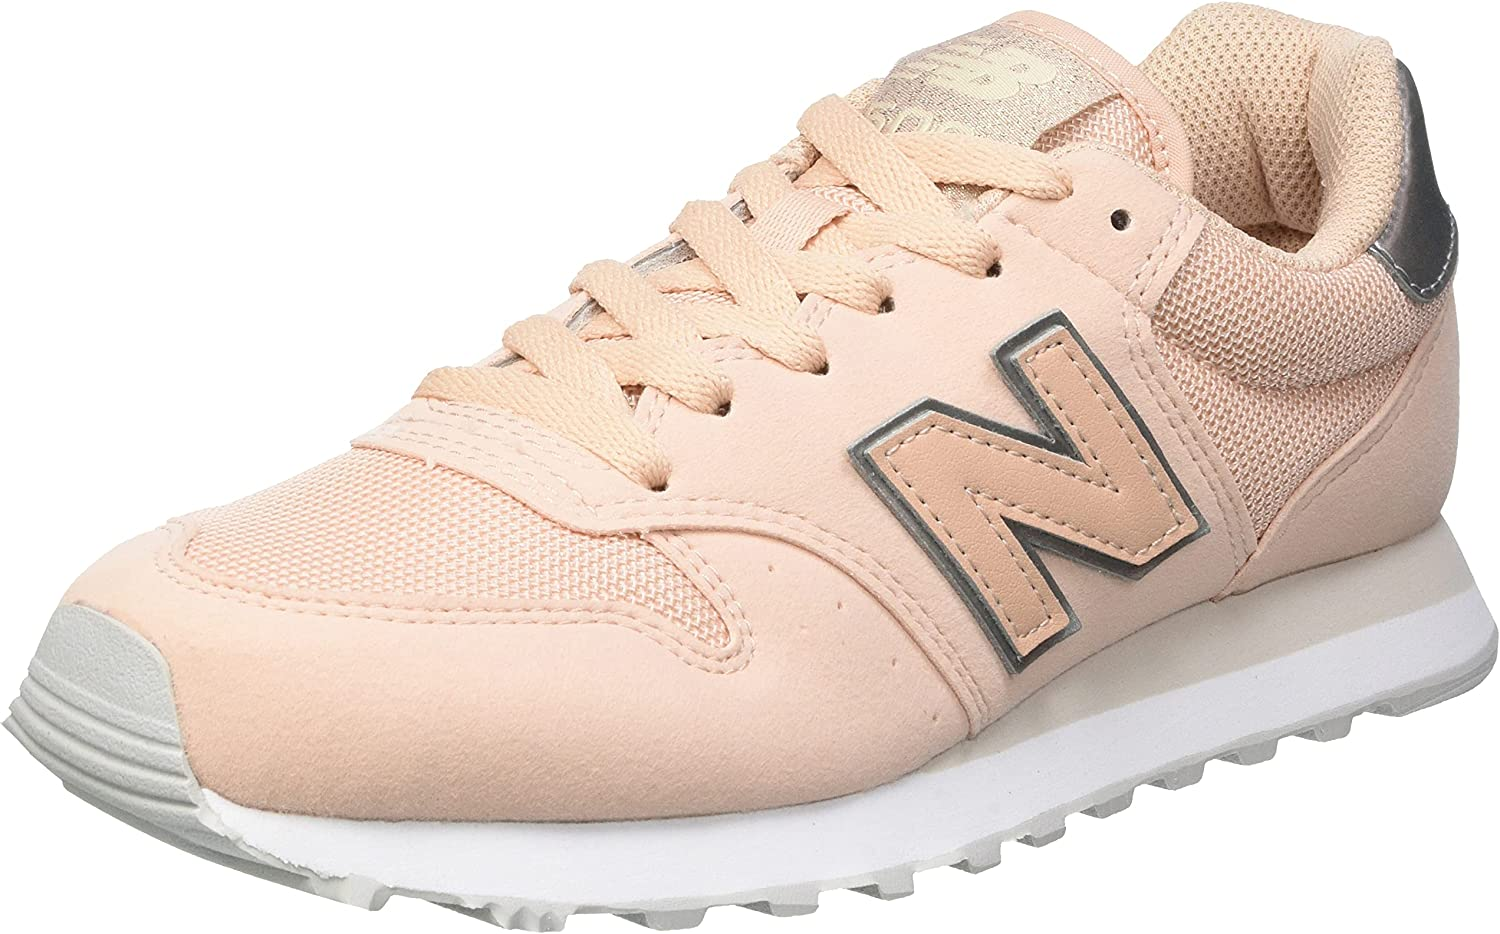 New Balance Women's New products, world's highest quality popular! 500 Core Super special price Sneaker Water Metallic Rose Pack